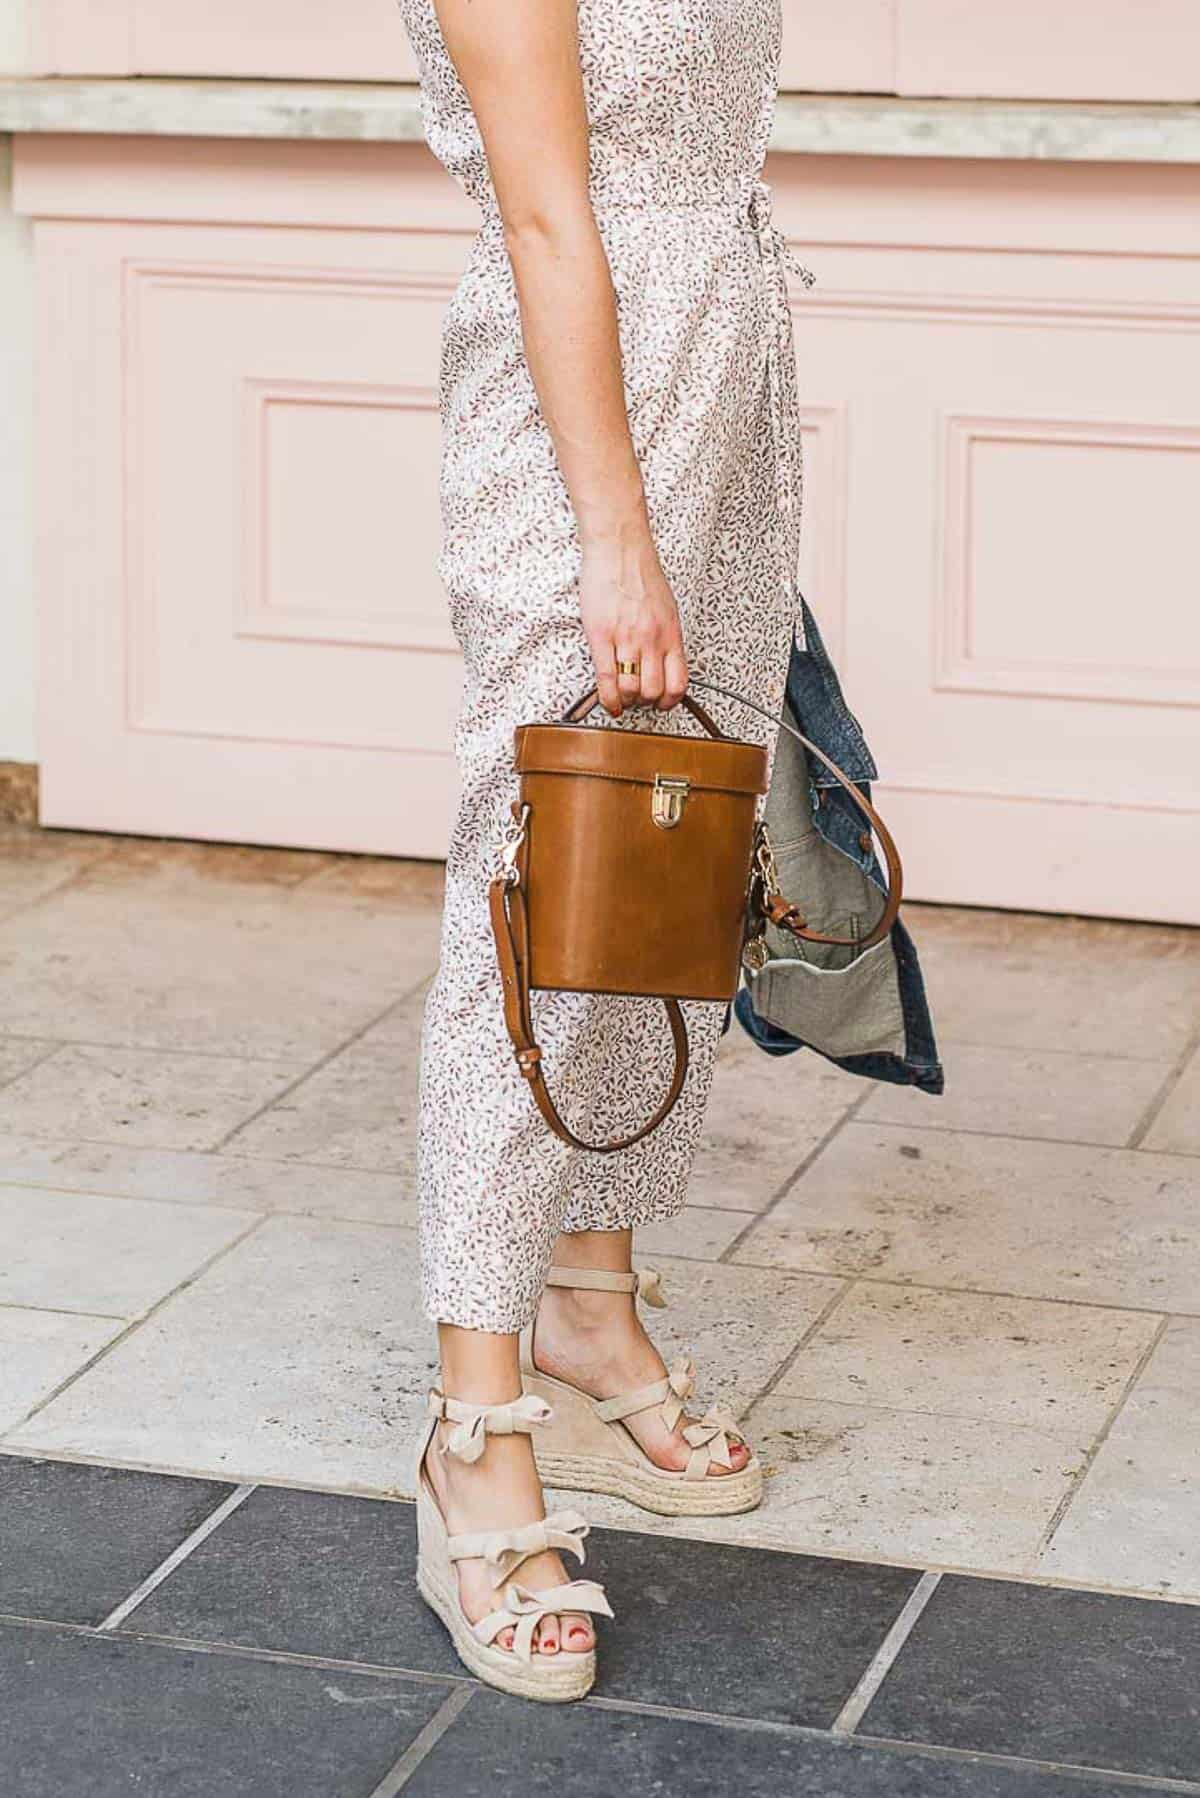 CASTANER WEDGES AND BRAHMIN BAG FEATURED